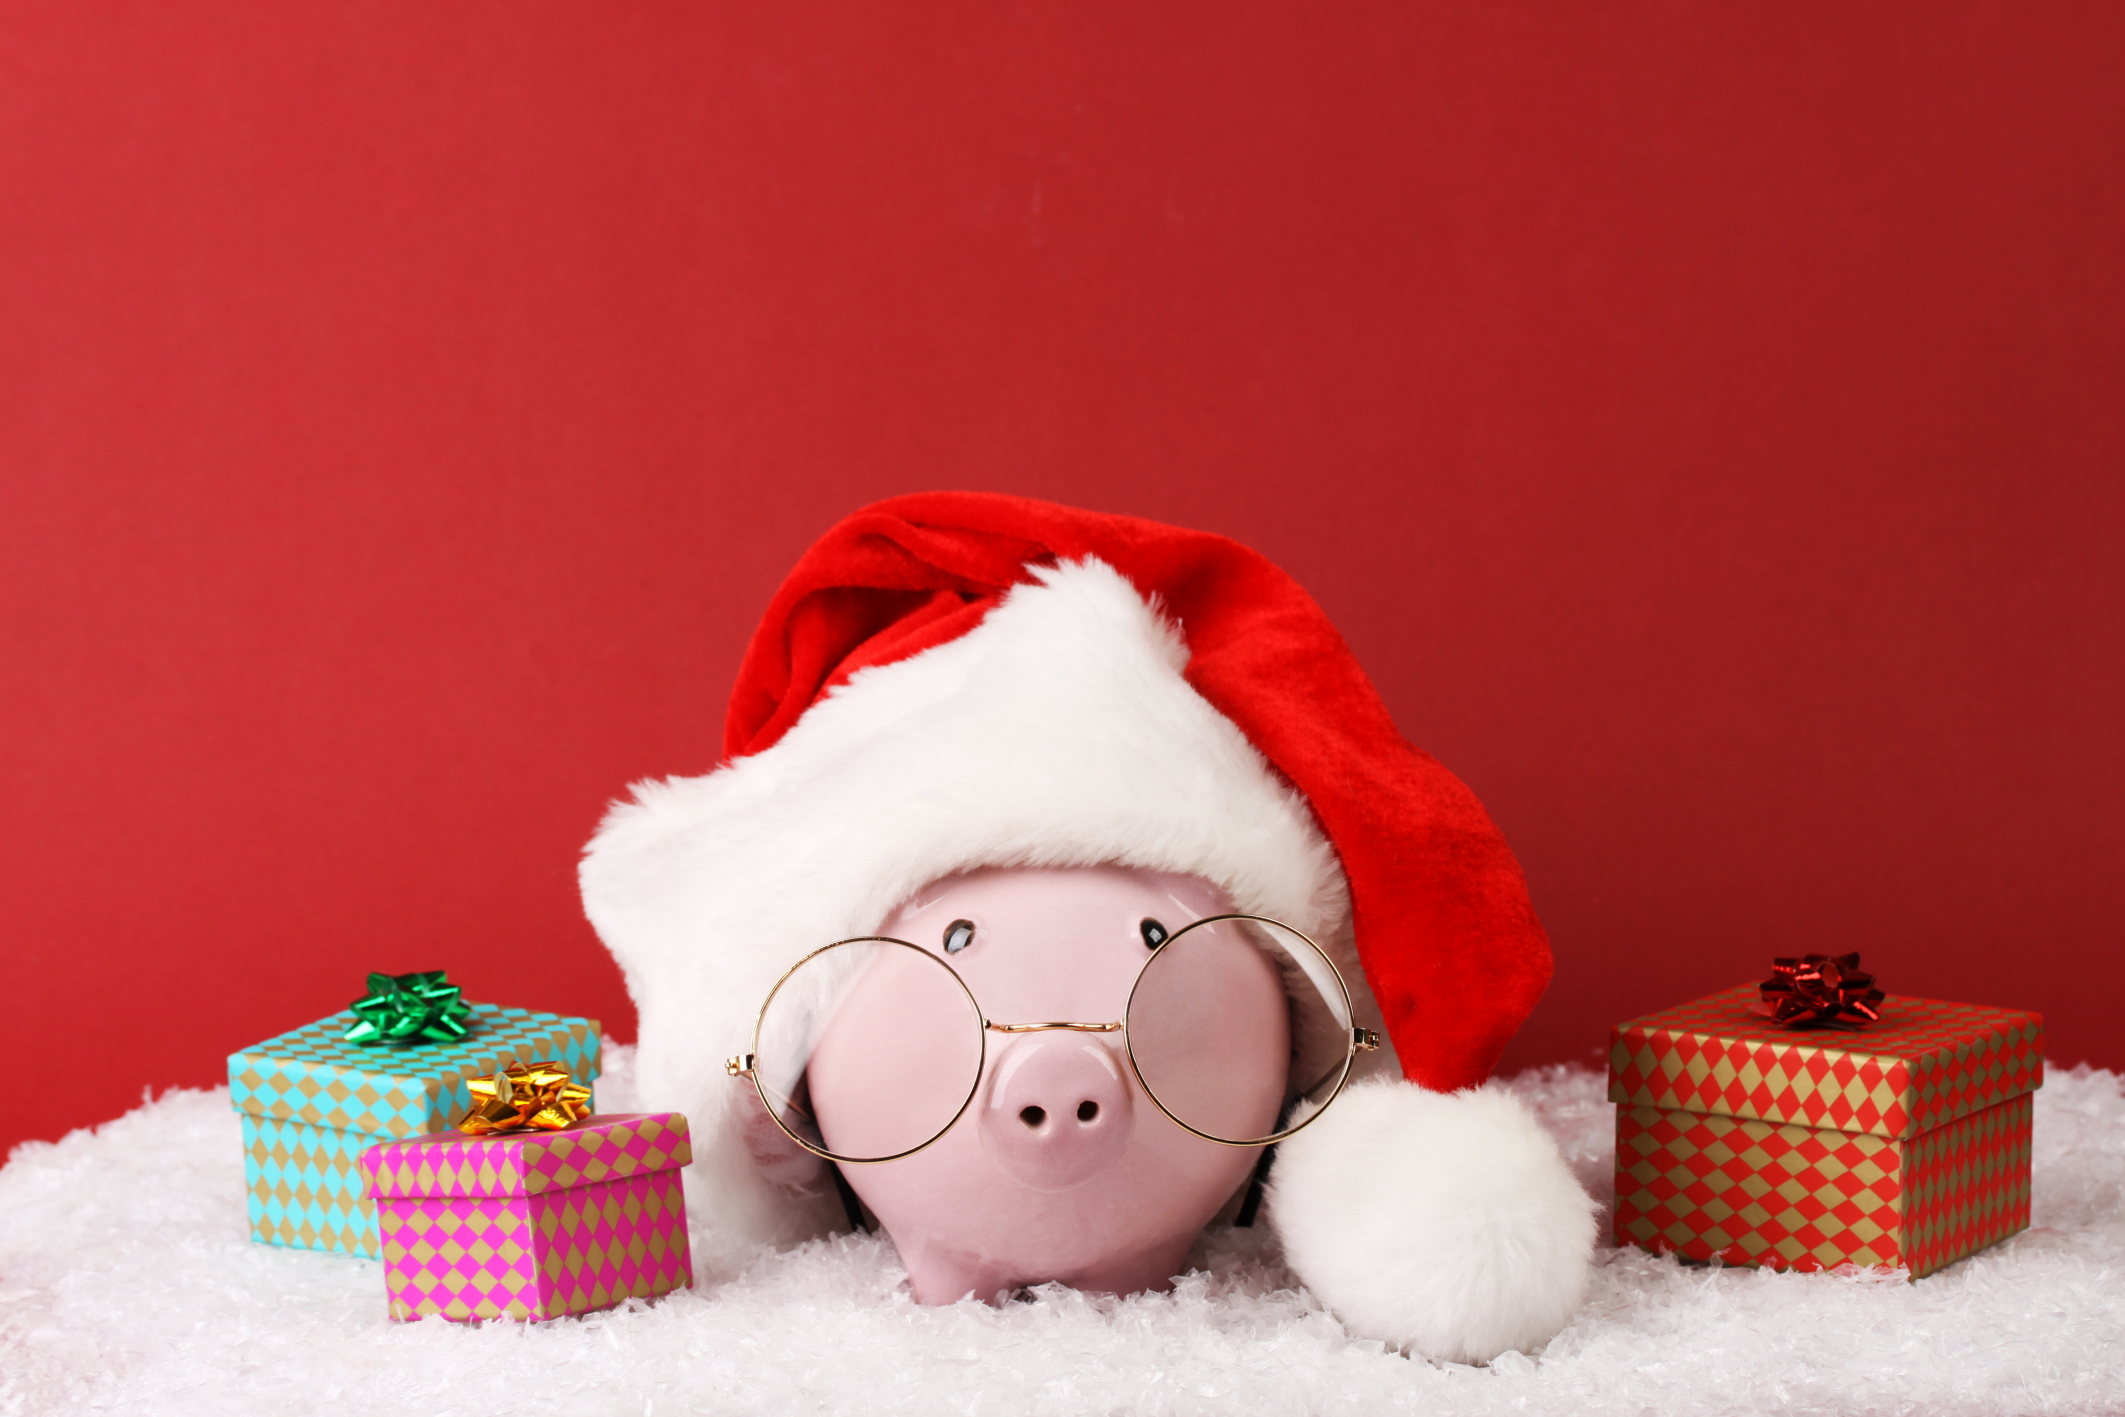 ThinkstockPhotos 492308936 Hosting for the Holidays? Heres How to Stay Sane.